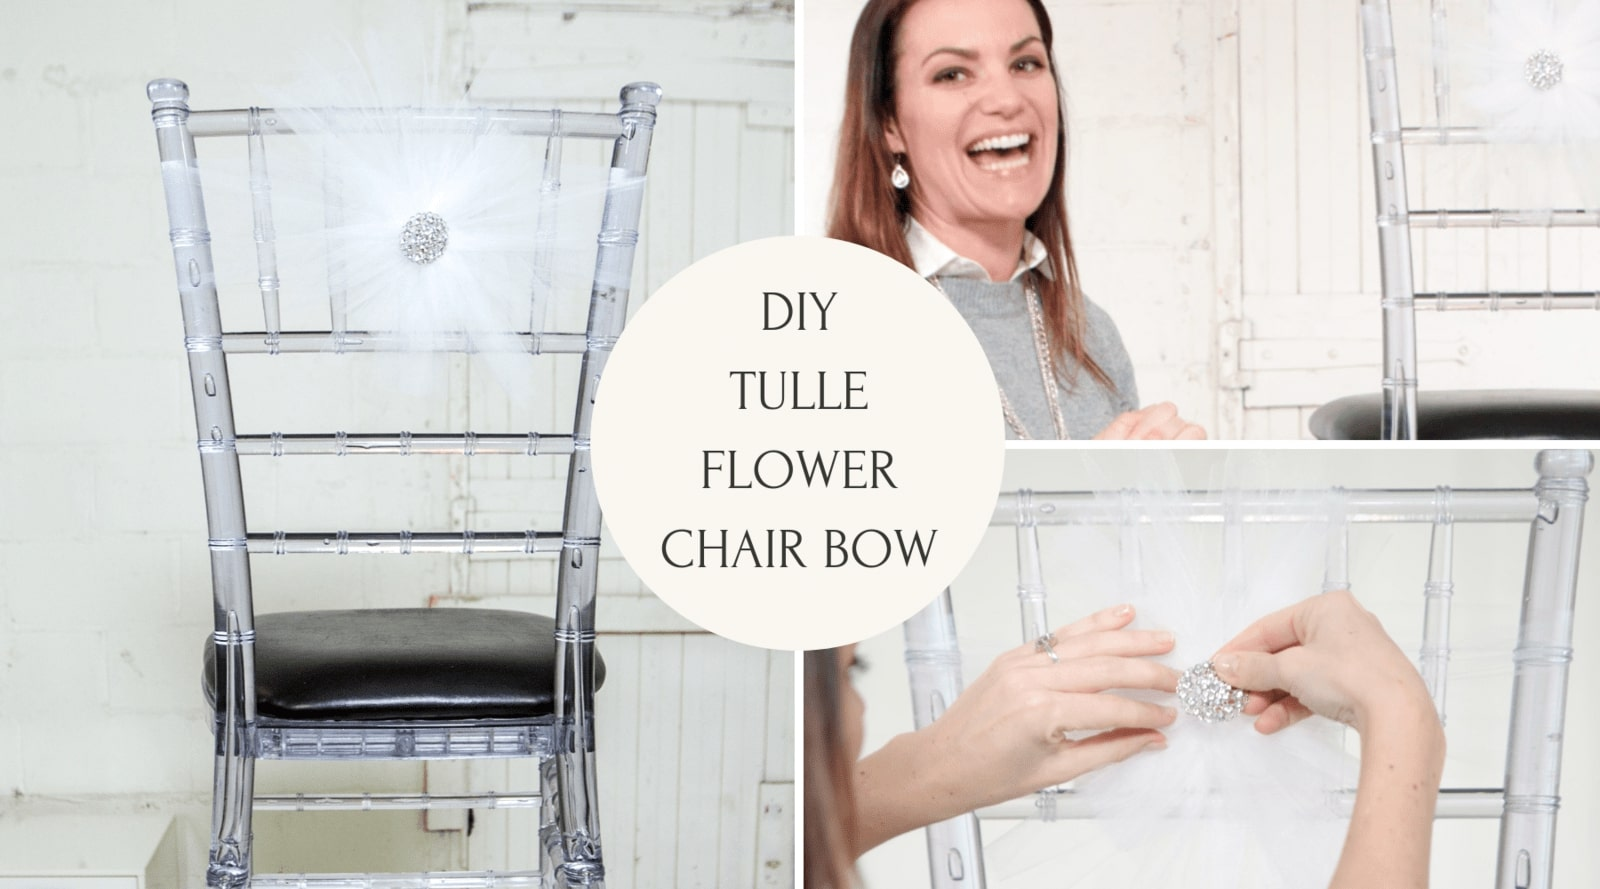 DIY Tulle Flower Chair Bow